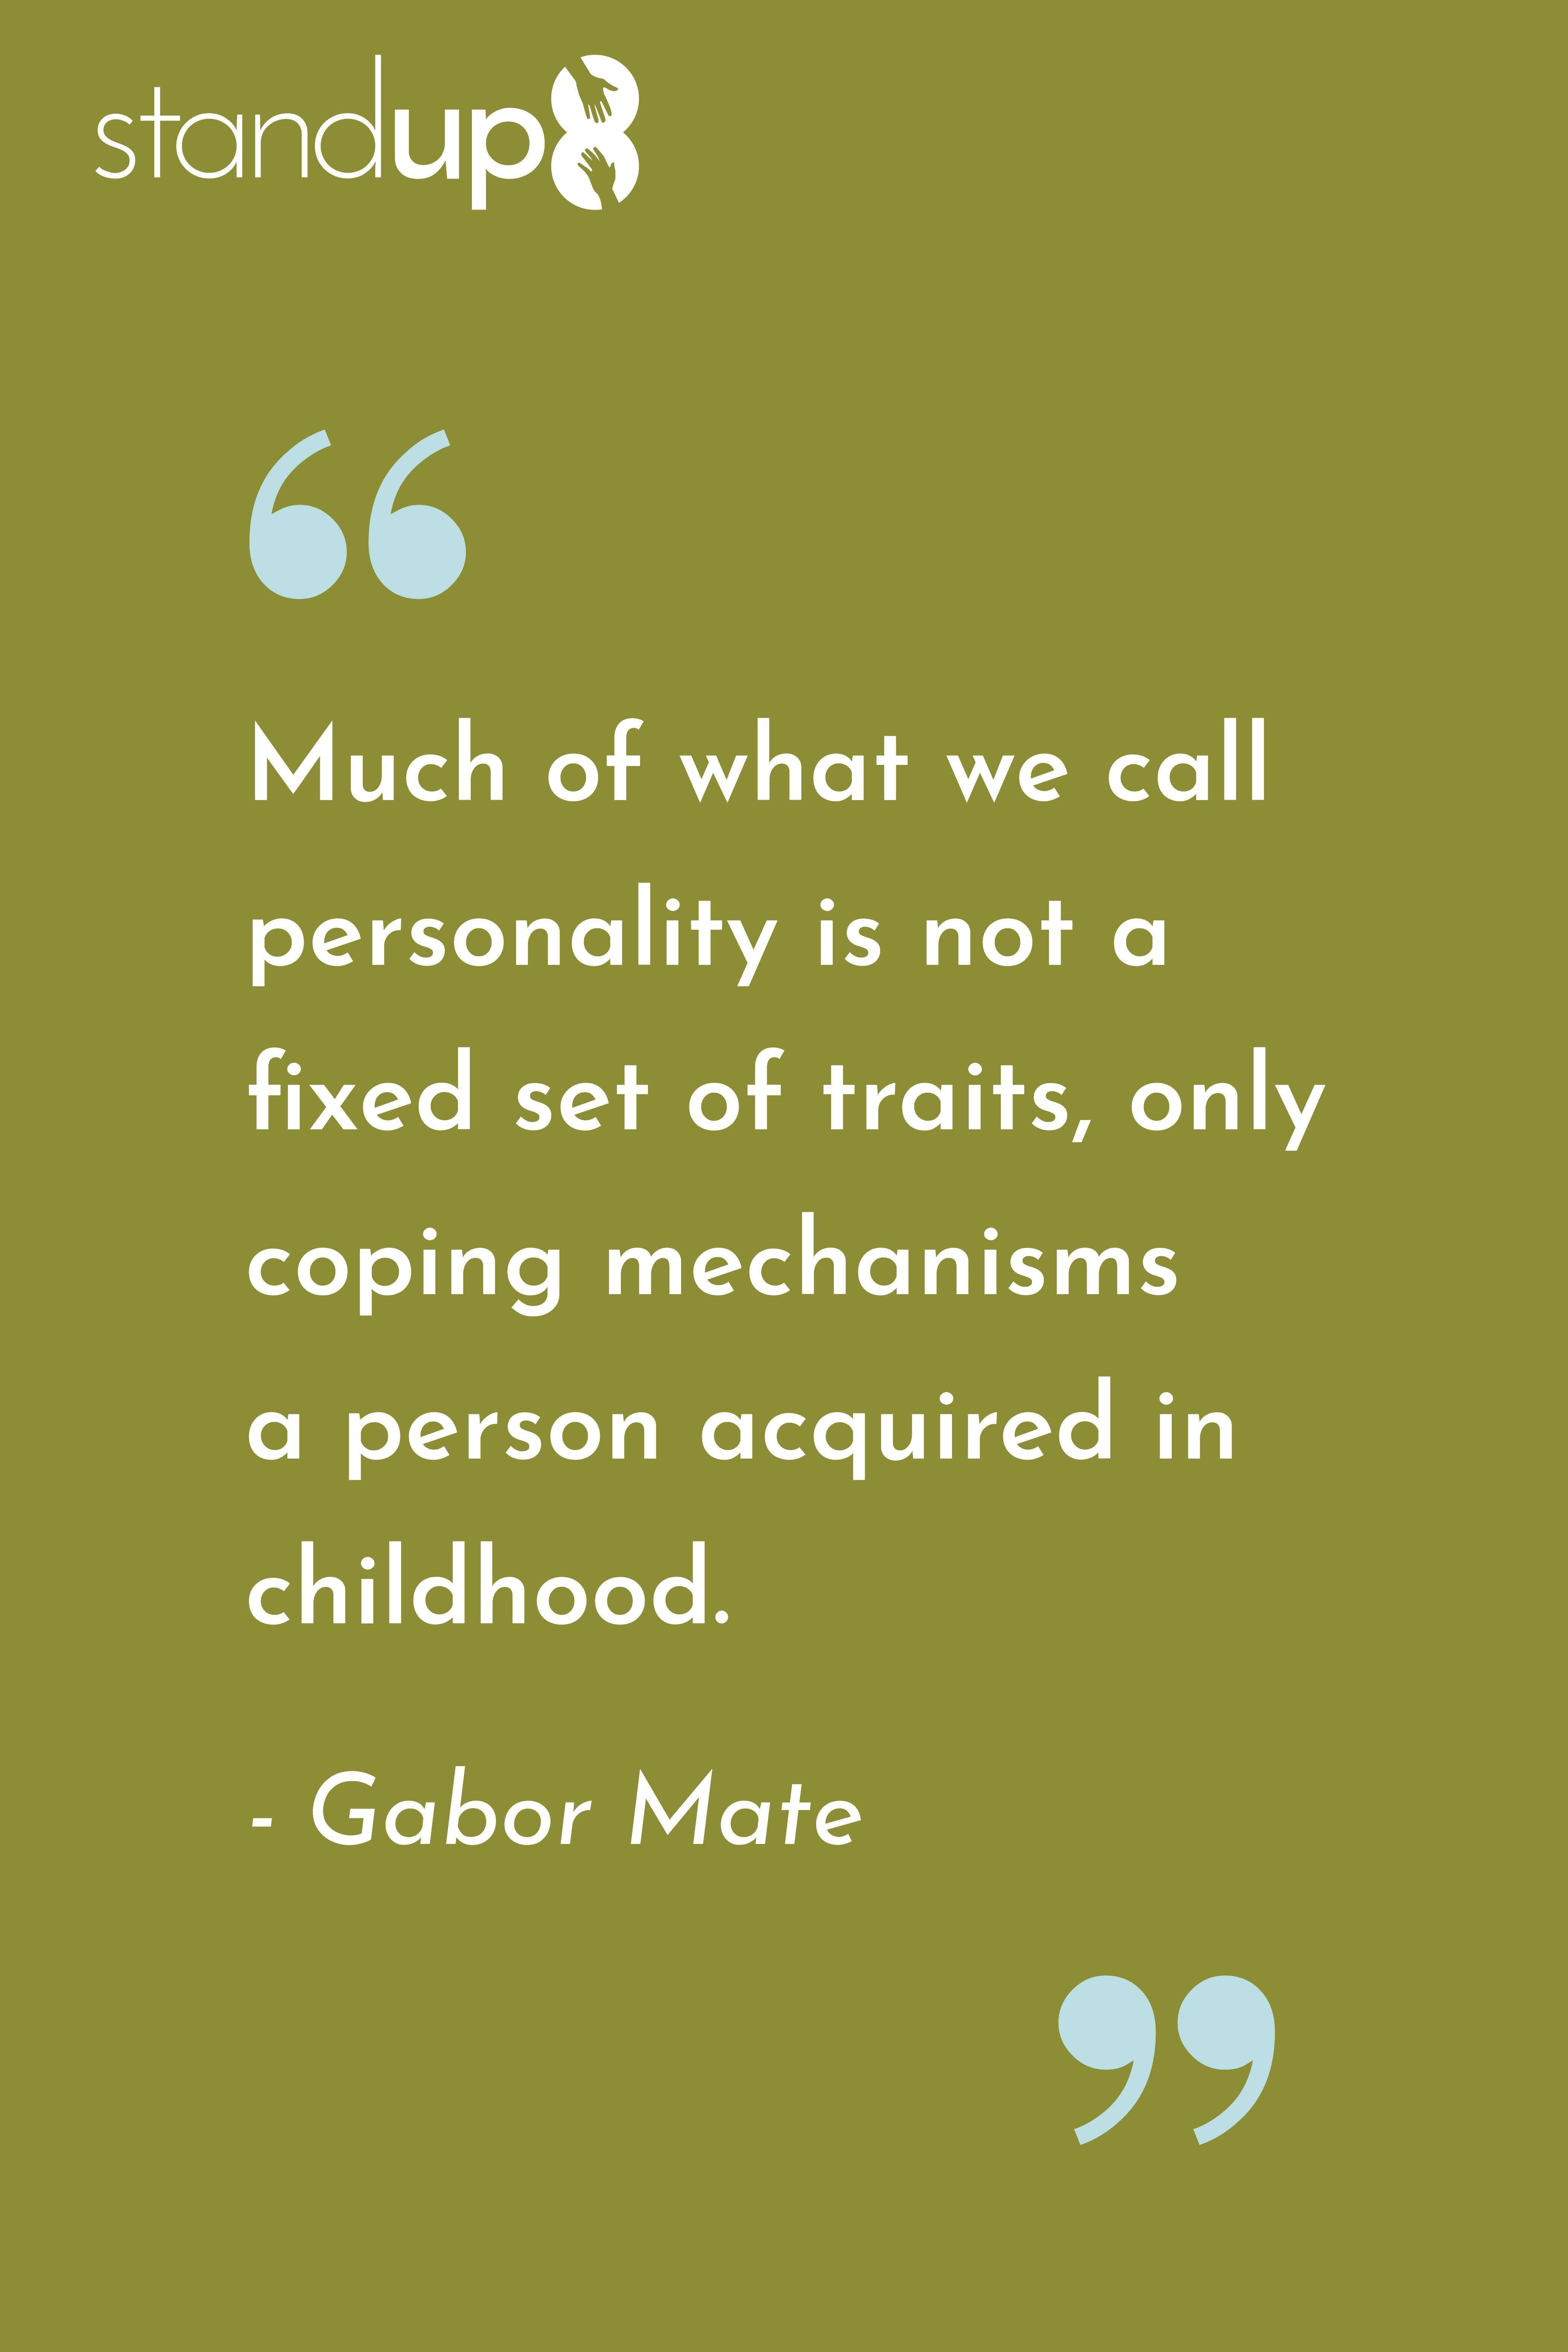 Personality Quotes Inspirational Quotes About Children Inspirational Quotes Work Quotes Emotional Recovery